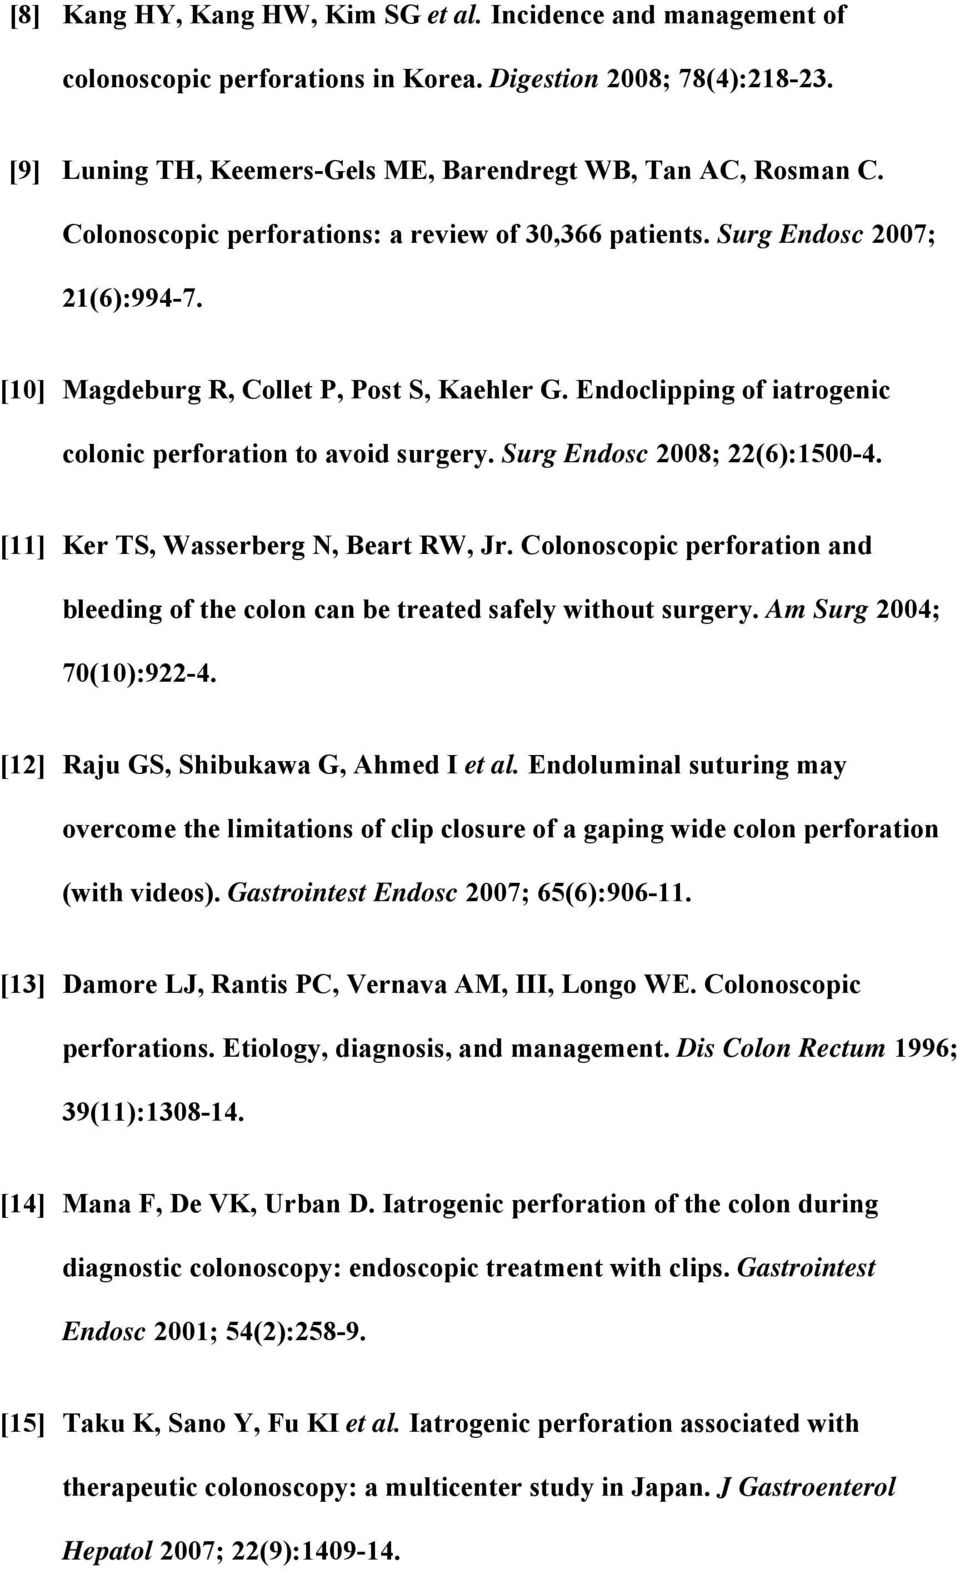 Surg Endosc 2008; 22(6):1500-4. [11] Ker TS, Wasserberg N, Beart RW, Jr. Colonoscopic perforation and bleeding of the colon can be treated safely without surgery. Am Surg 2004; 70(10):922-4.